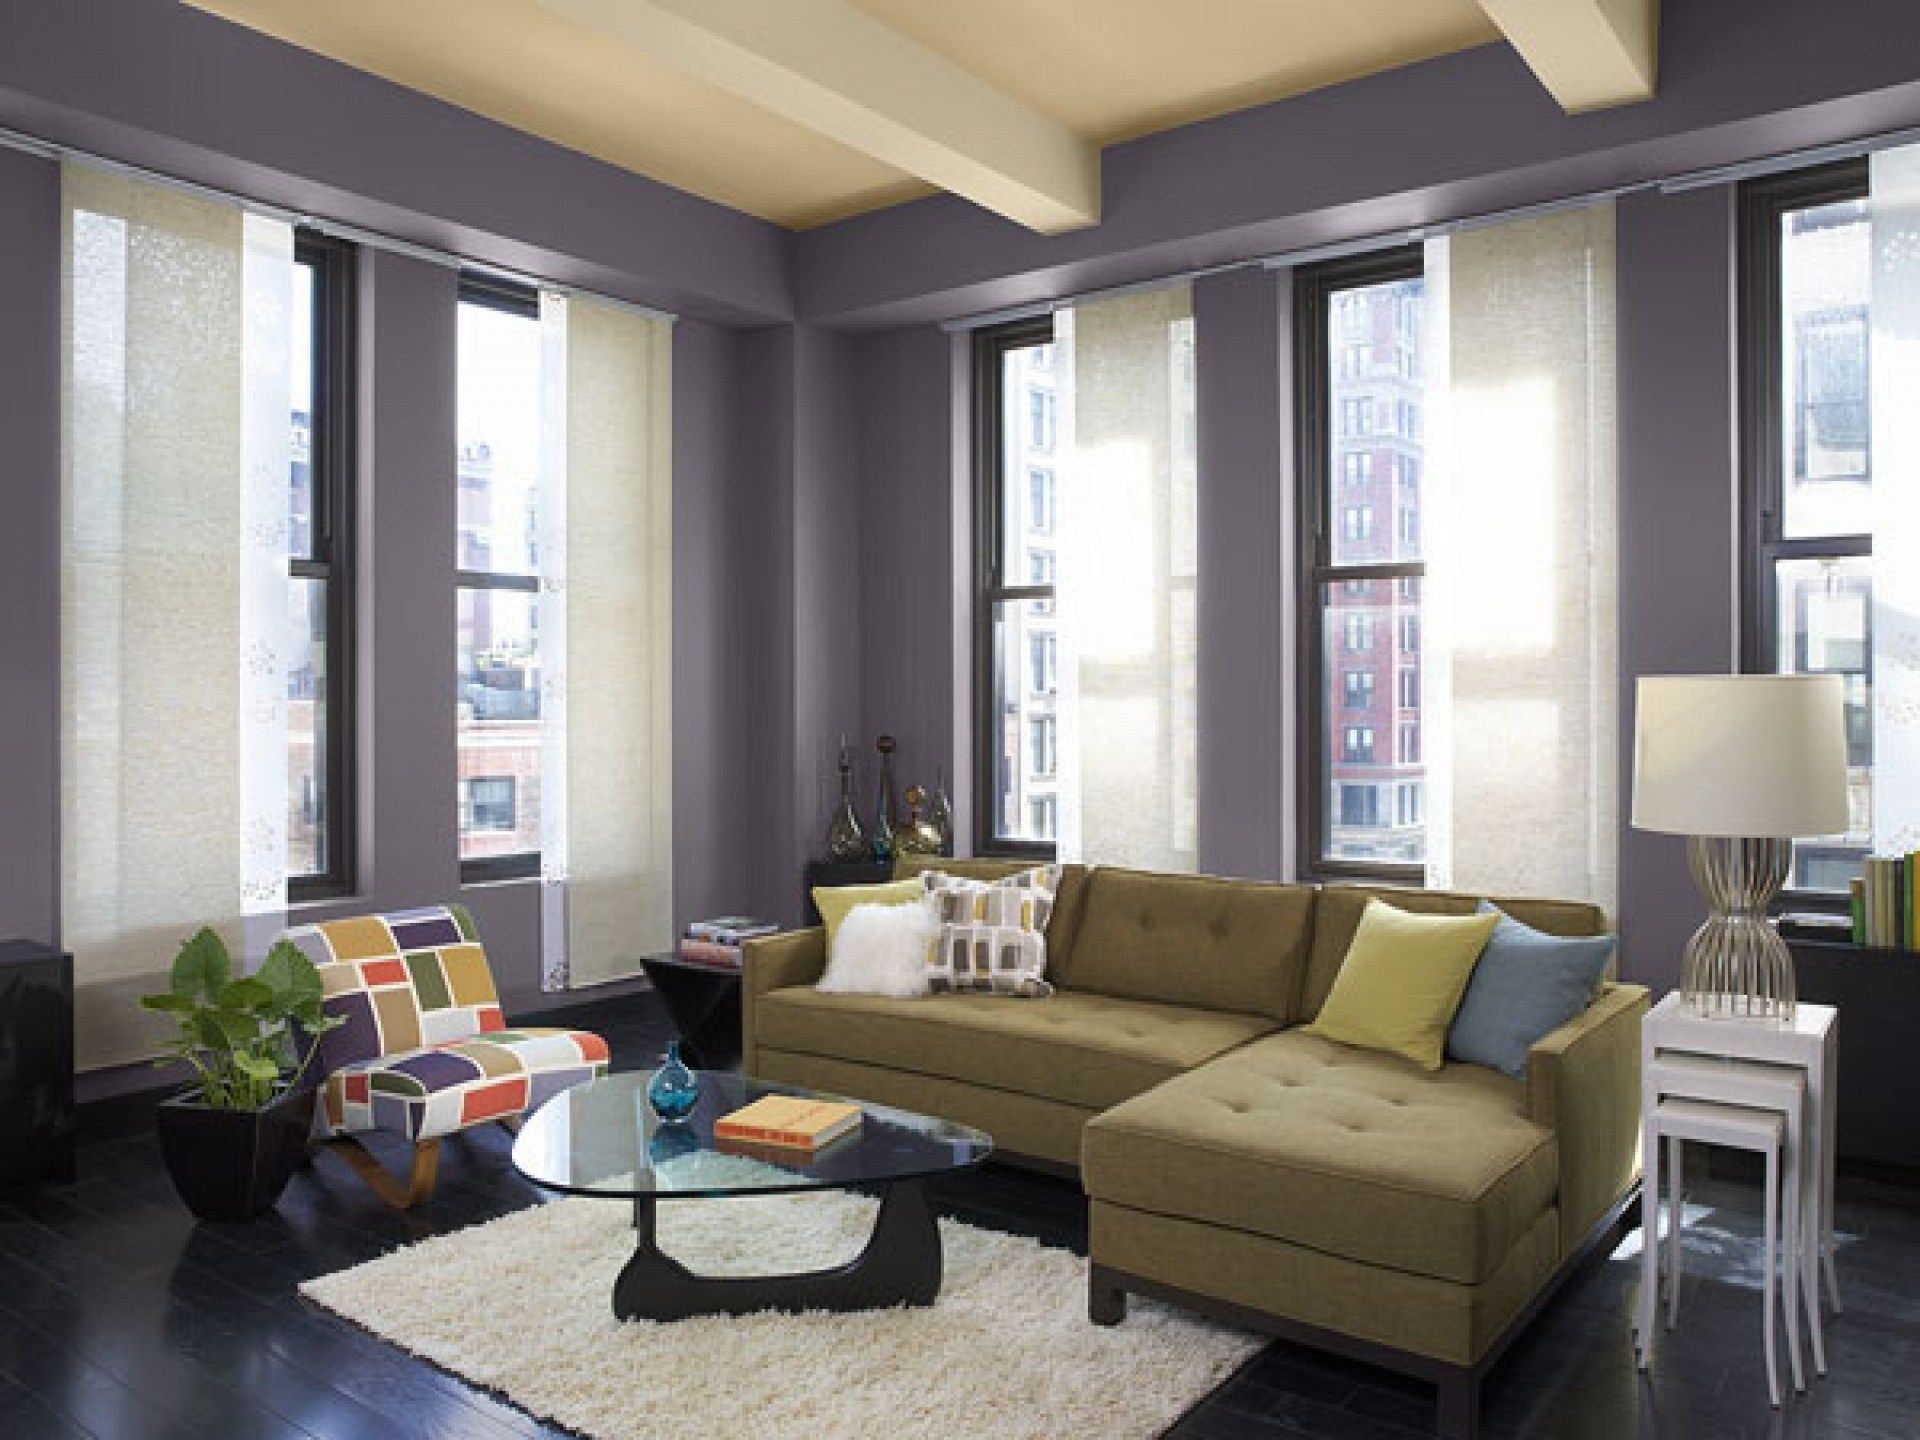 Best Pretty Brighter Living Room Colors 2016 Paint Colors North 640 x 480